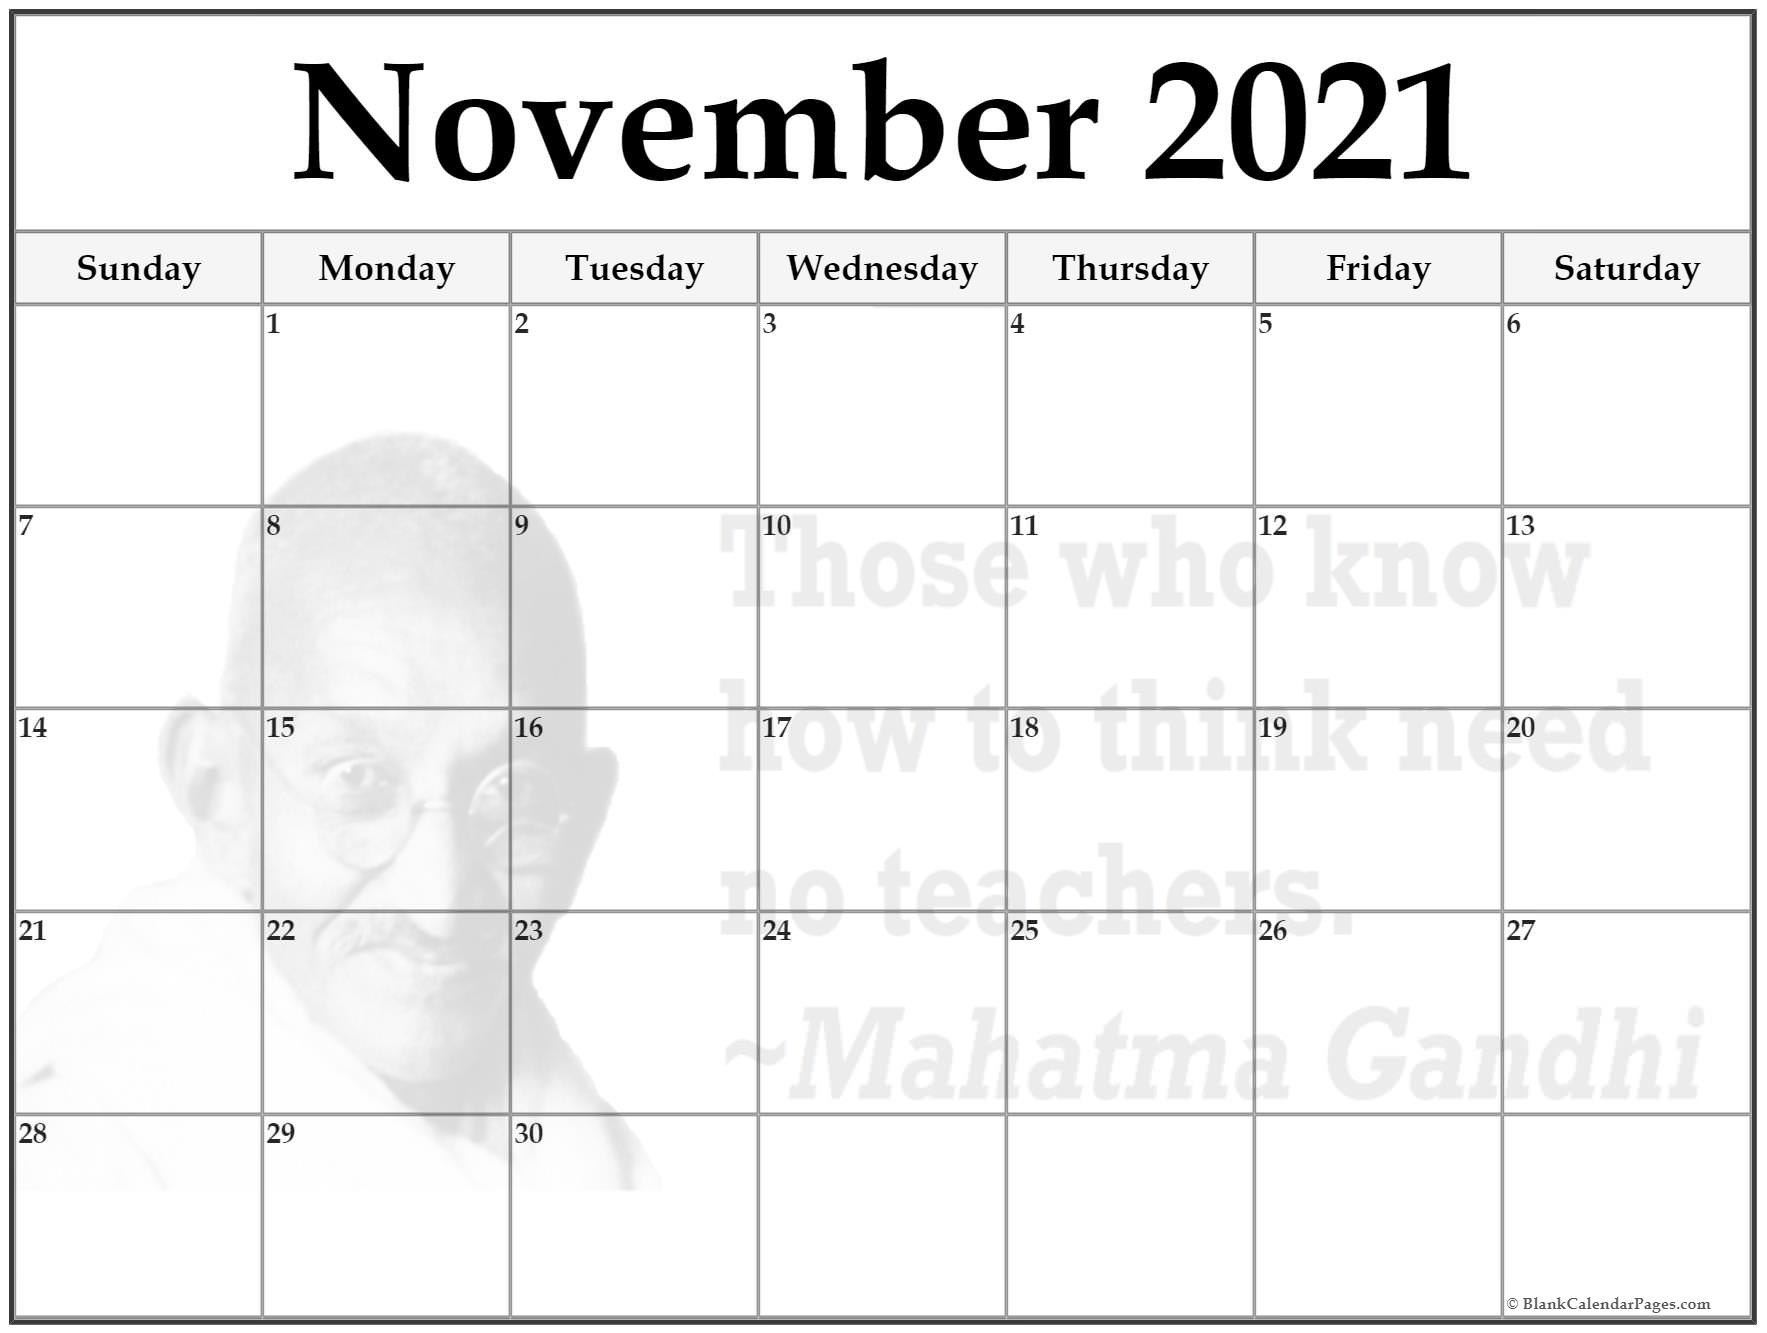 November 2021 monthly calendar template. Those who know how to think need no teachers. ~Mahatma Gandhi